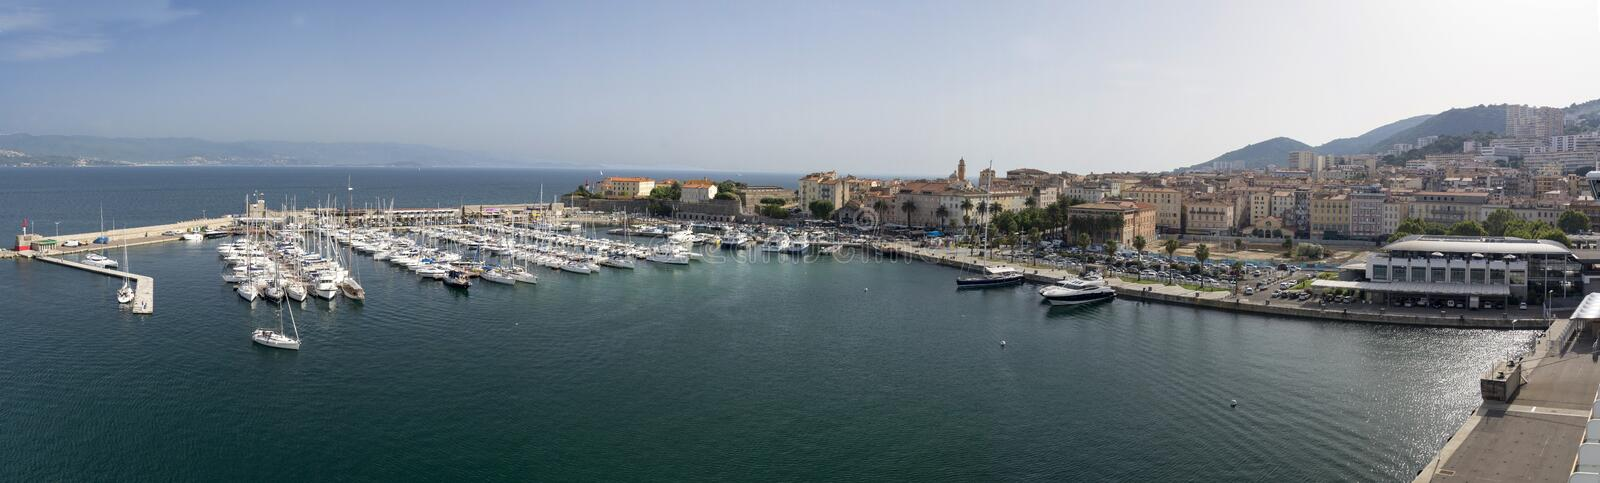 Ajaccio Harbour. Corsica France taken on several images and stitched in Photoshop stock photography